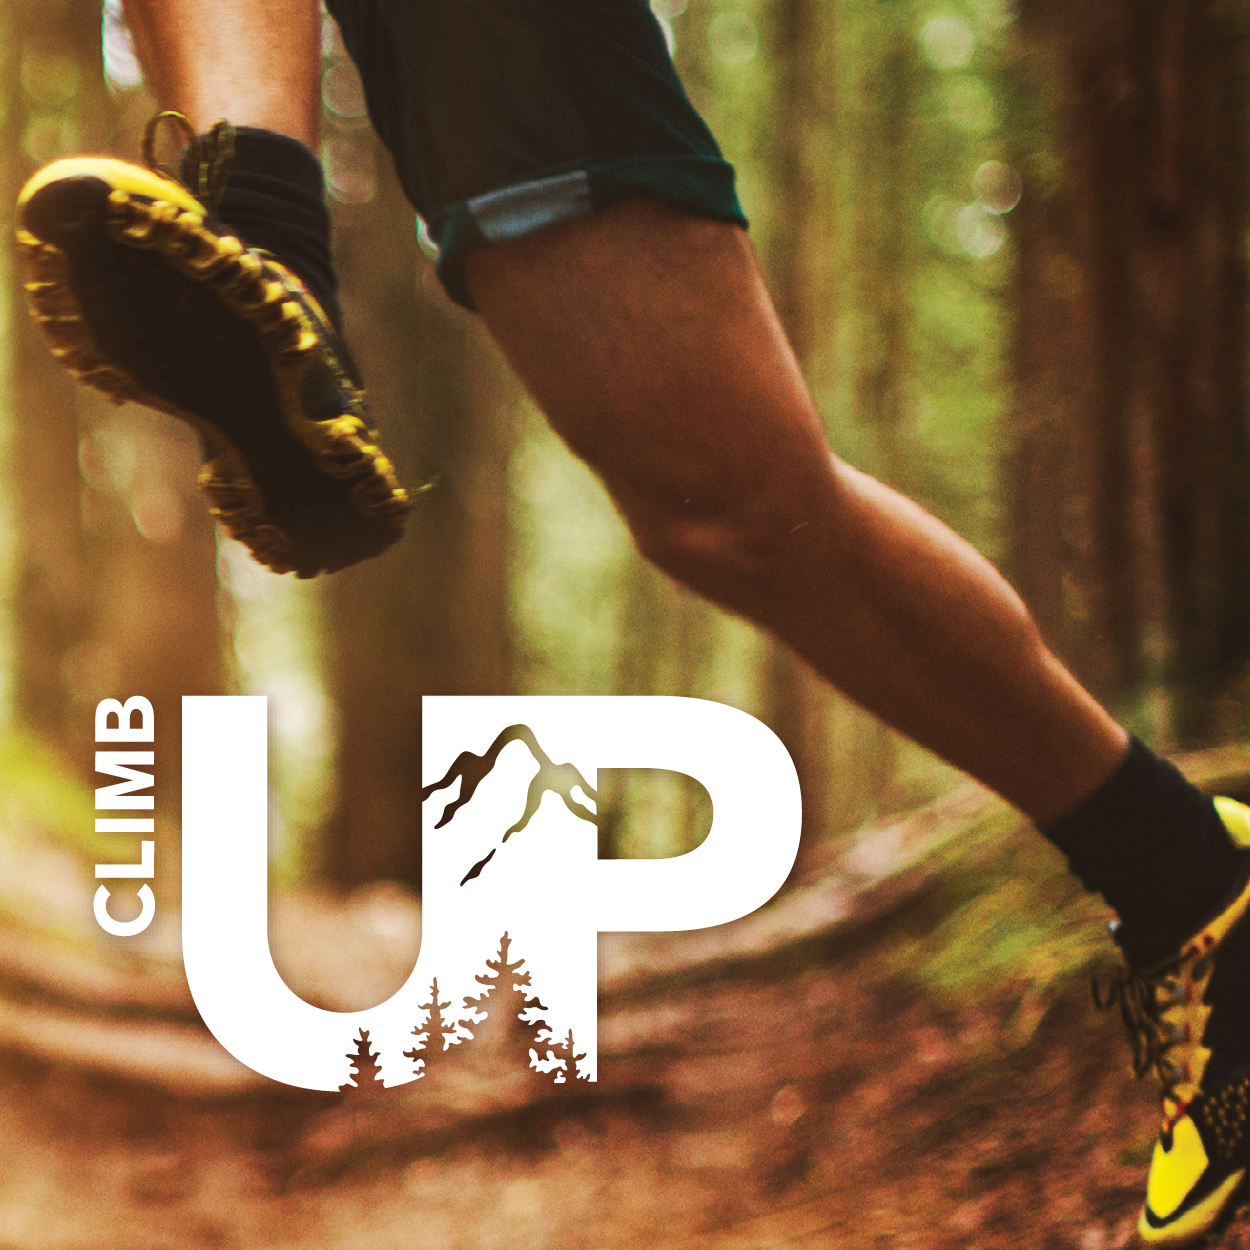 ClimbUP for mental health with United Way